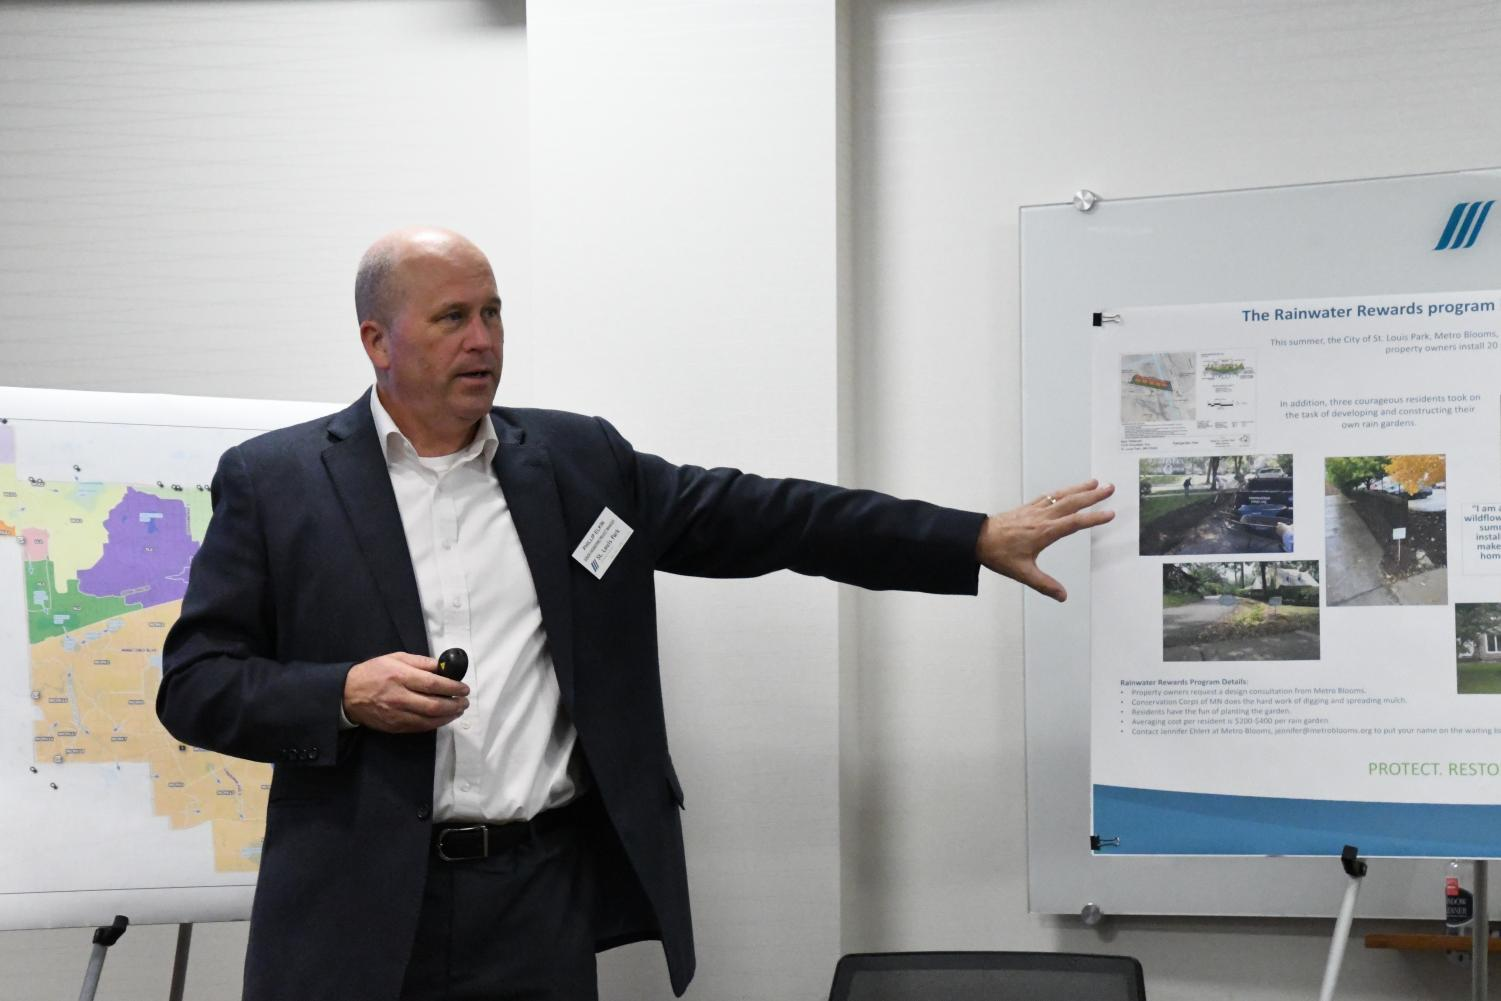 Senior engineering project manager Phillip Elkin talks to community members at the Water Plan meeting. Elkin referenced the poster with information about rain gardens and their effect on the St. Louis Park community as a whole.